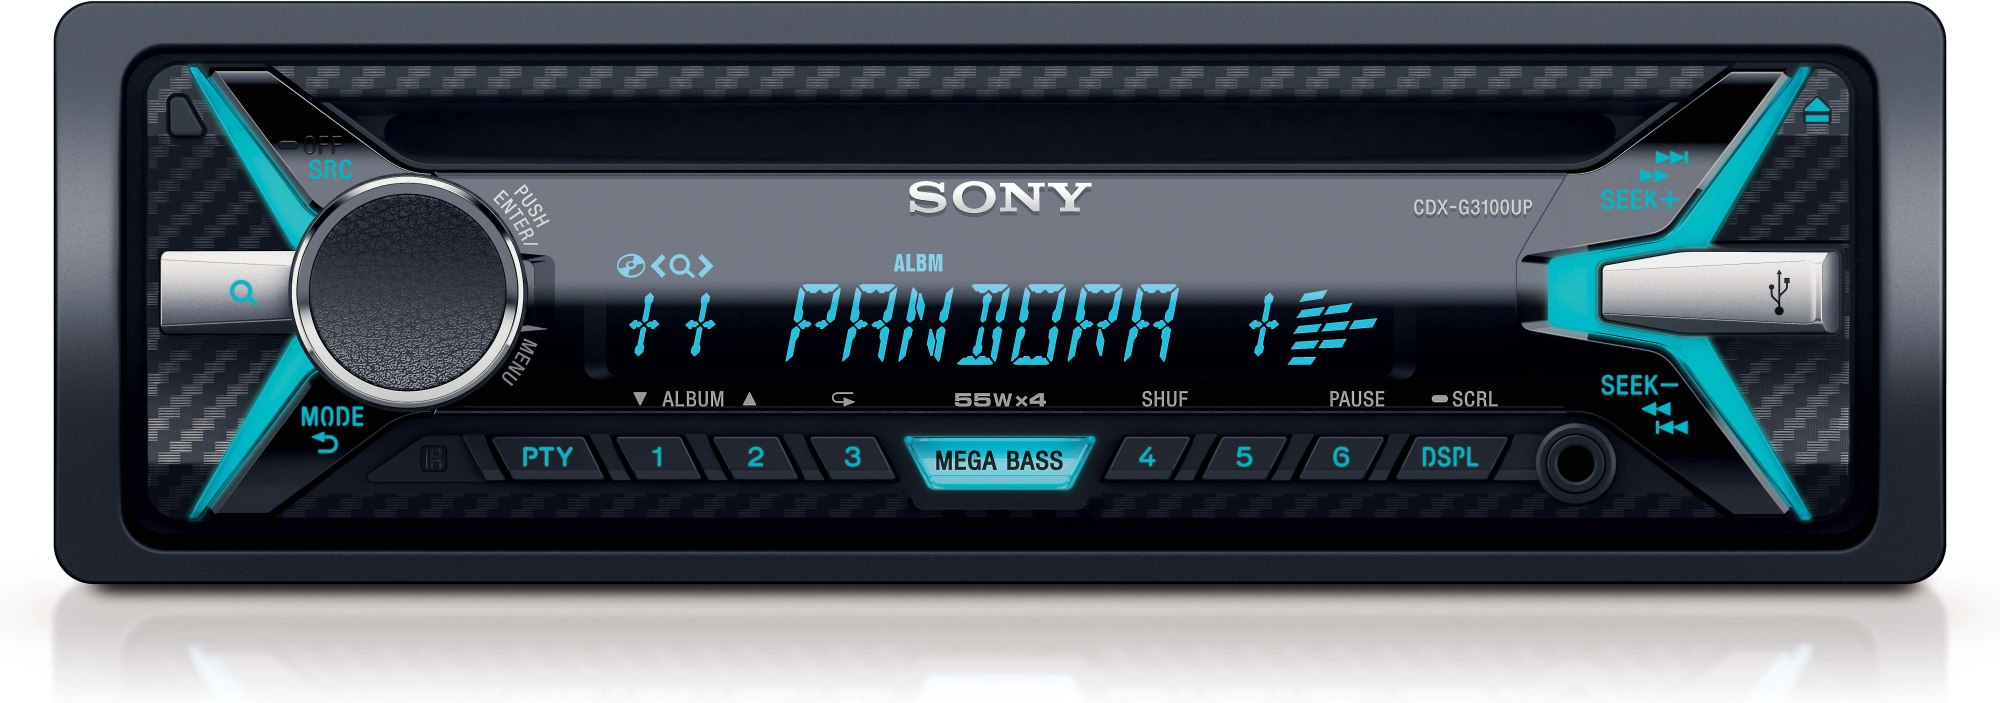 hight resolution of sony car stereo wiring harnes cdx gt620